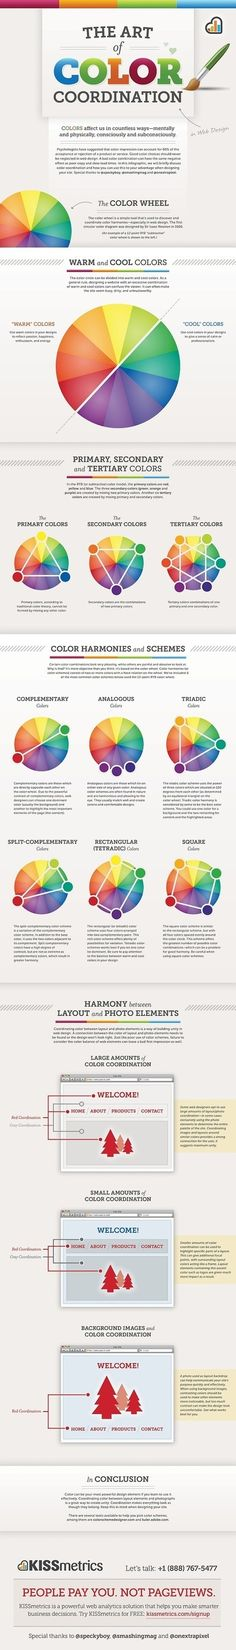 Color Is MASTER of Us All [Infographic] (trending on Scoopit today)